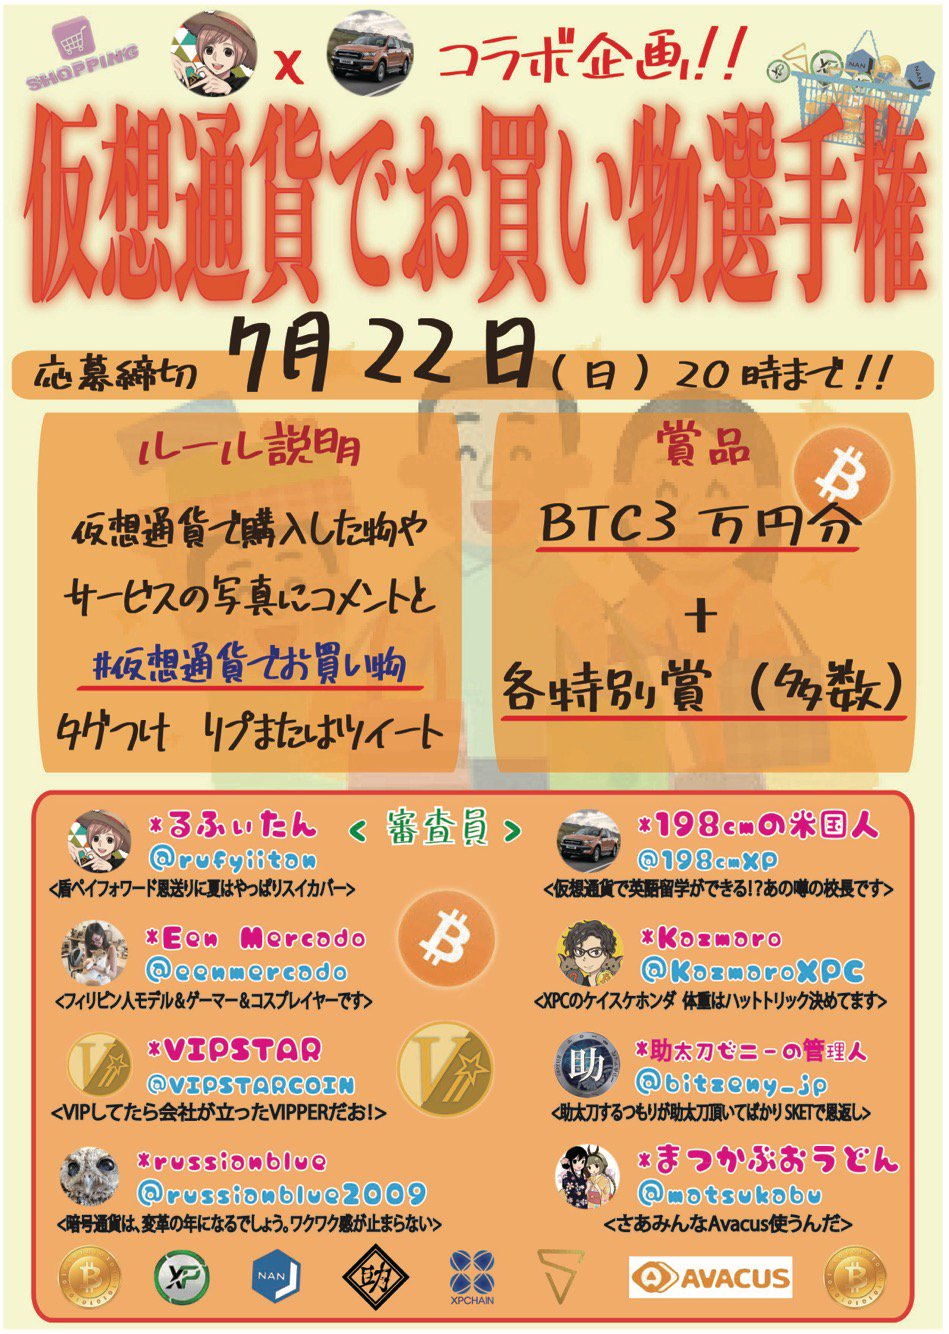 Cryptocurrency shopping championship